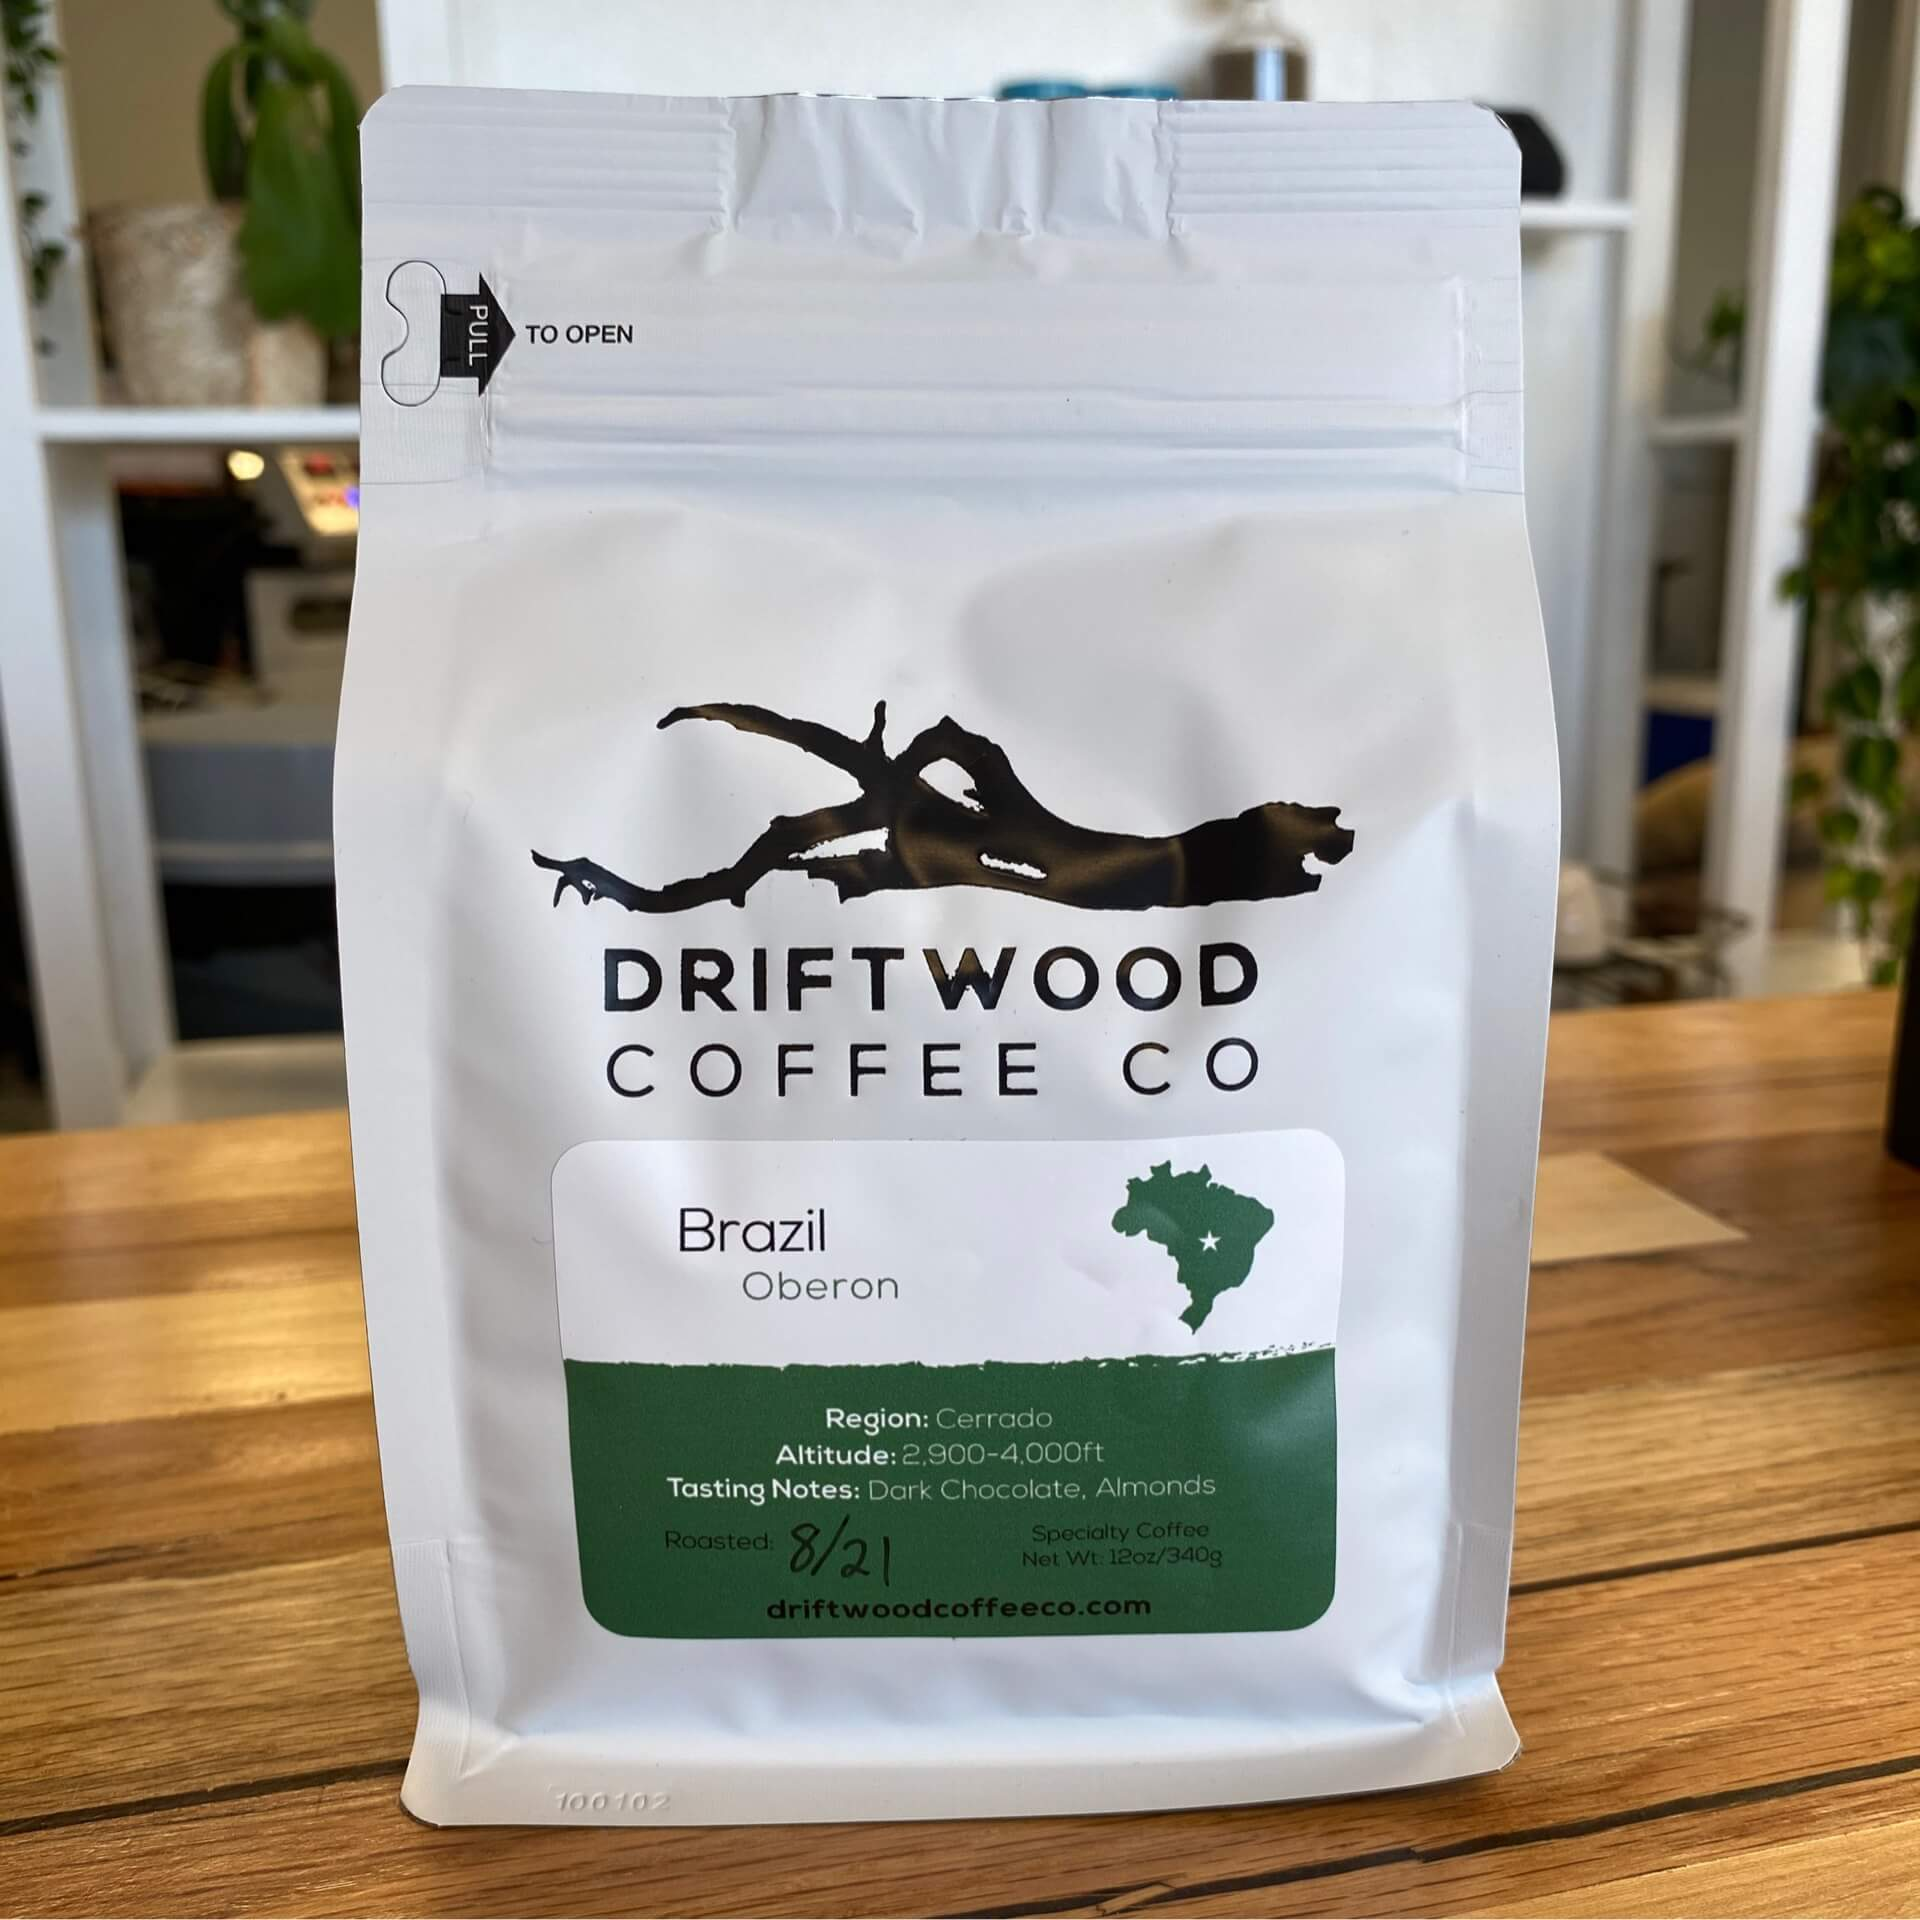 Brazil Oberon from Driftwood Coffee Co